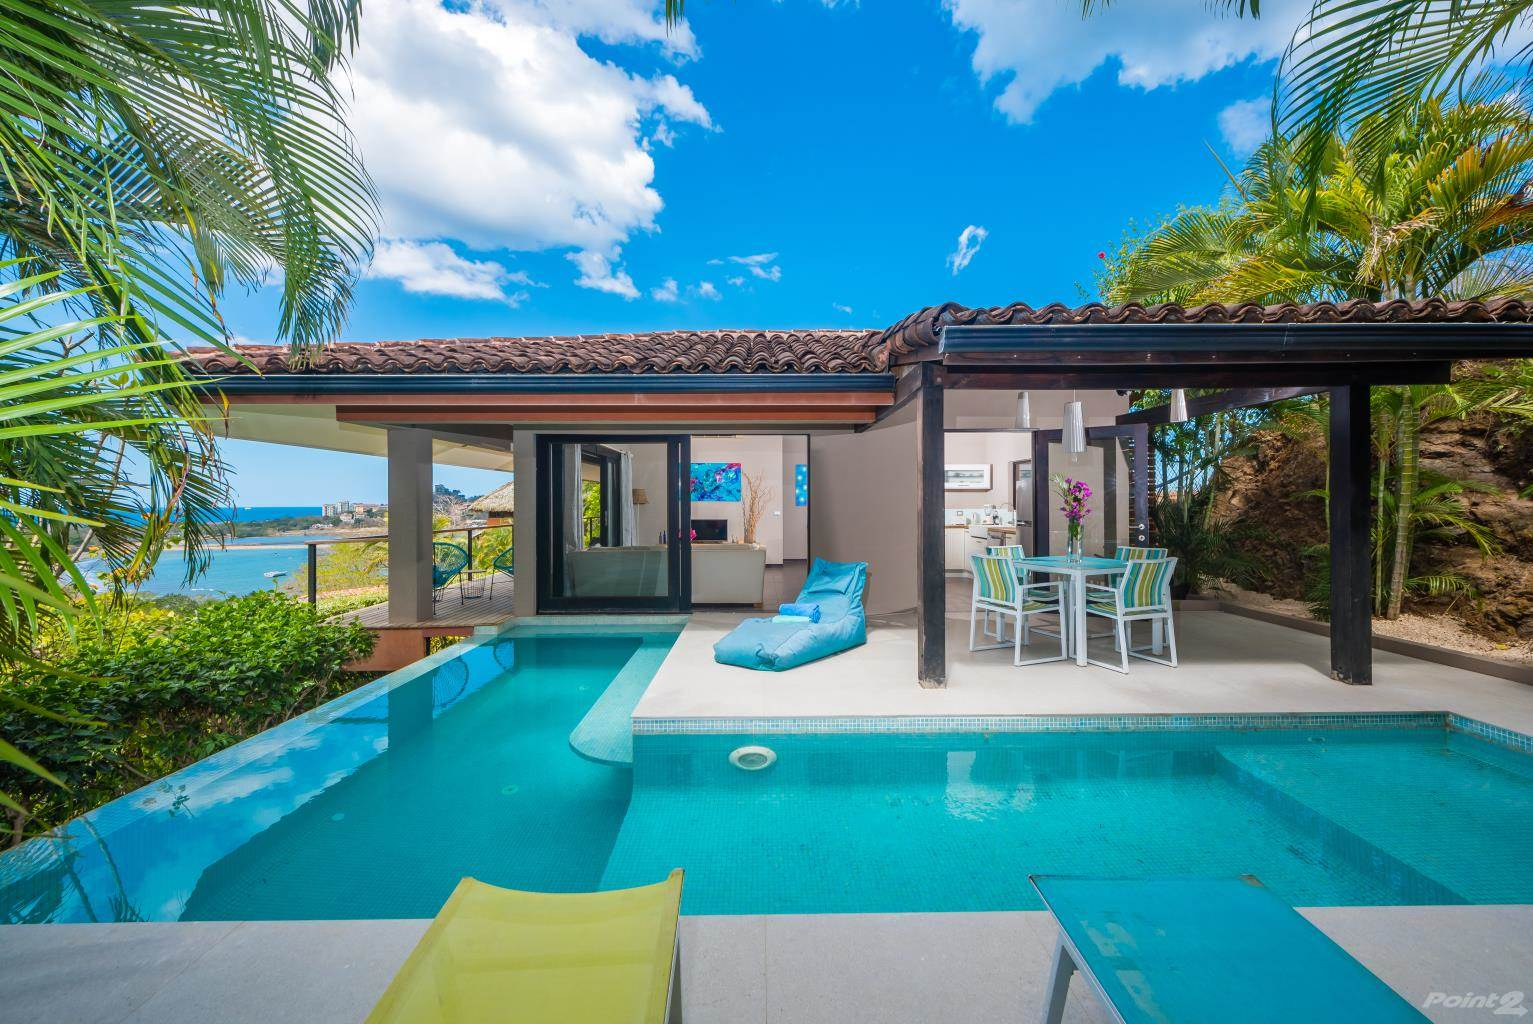 Residential For Sale in Casa Cielo, Colores de Pacifico - OCEAN VIEW & WALKABLE TO THE BEACH!, Playa Flamingo, Guanacaste   , Costa Rica